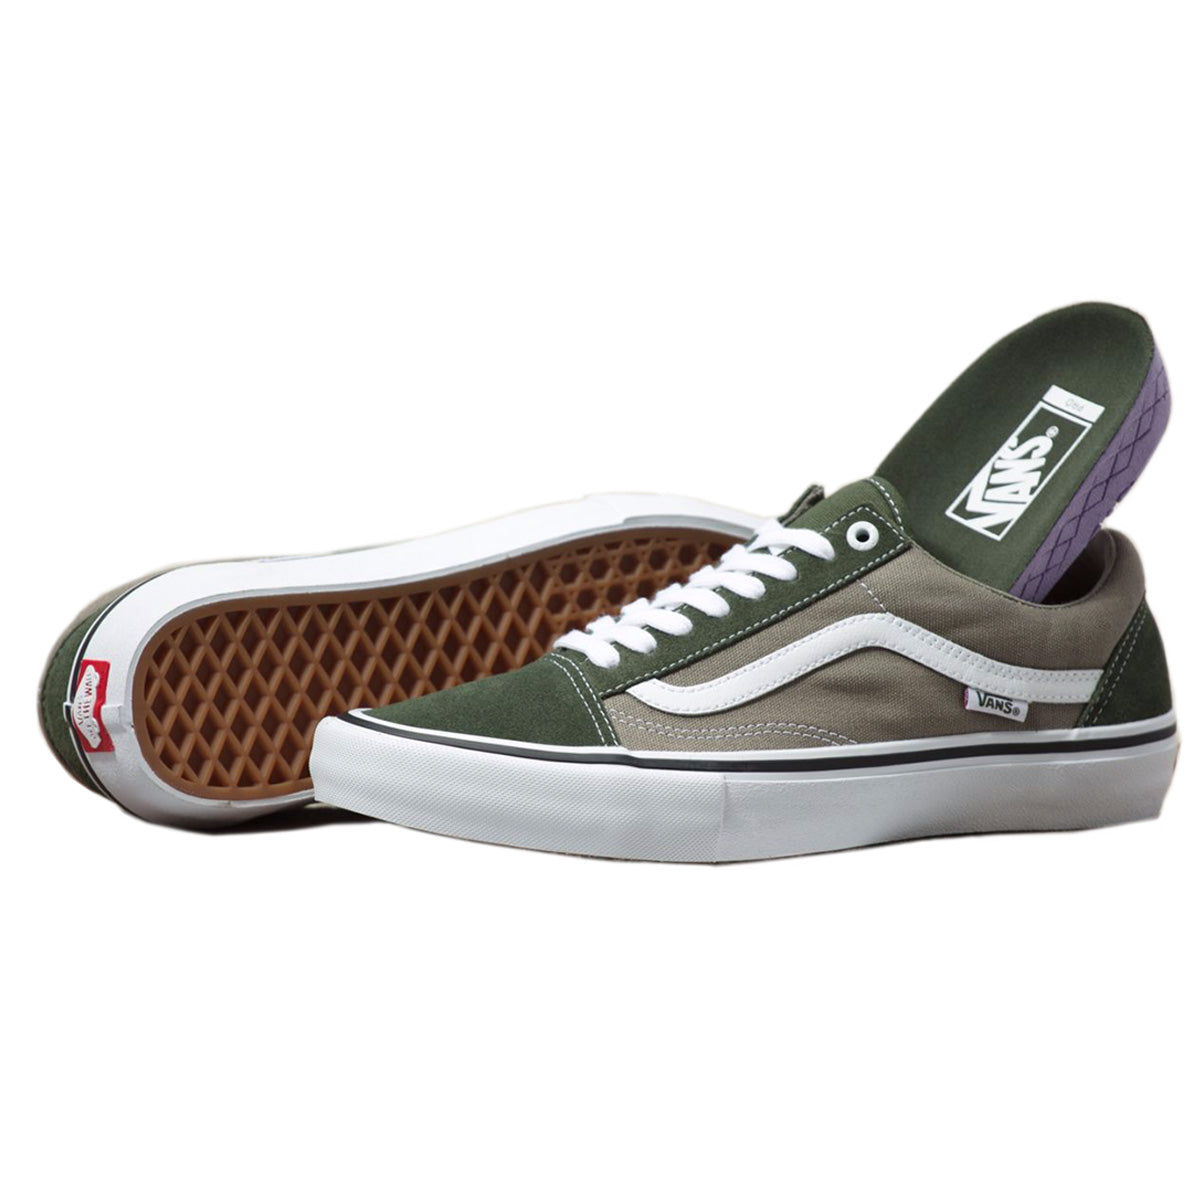 Vans Old Skool Pro - Forest/White | Underground Skate Shop